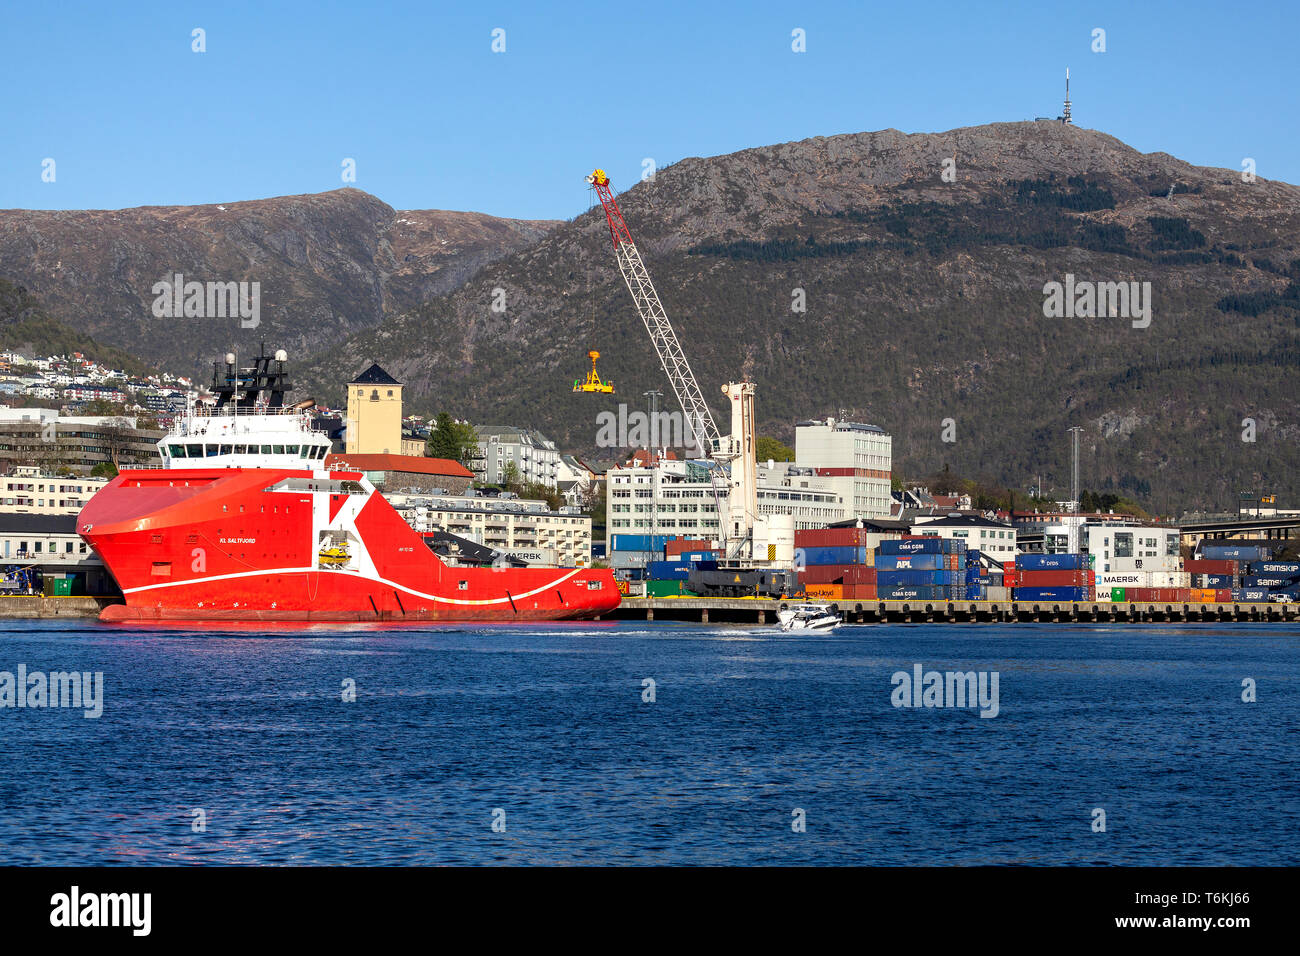 Offshore AHTS anchor handling tug supply vessel KL Saltfjord, berthed at Dokkeskjaerskaien (Dokkeskjærskaien) terminal in the port of Bergen, Norway.  - Stock Image